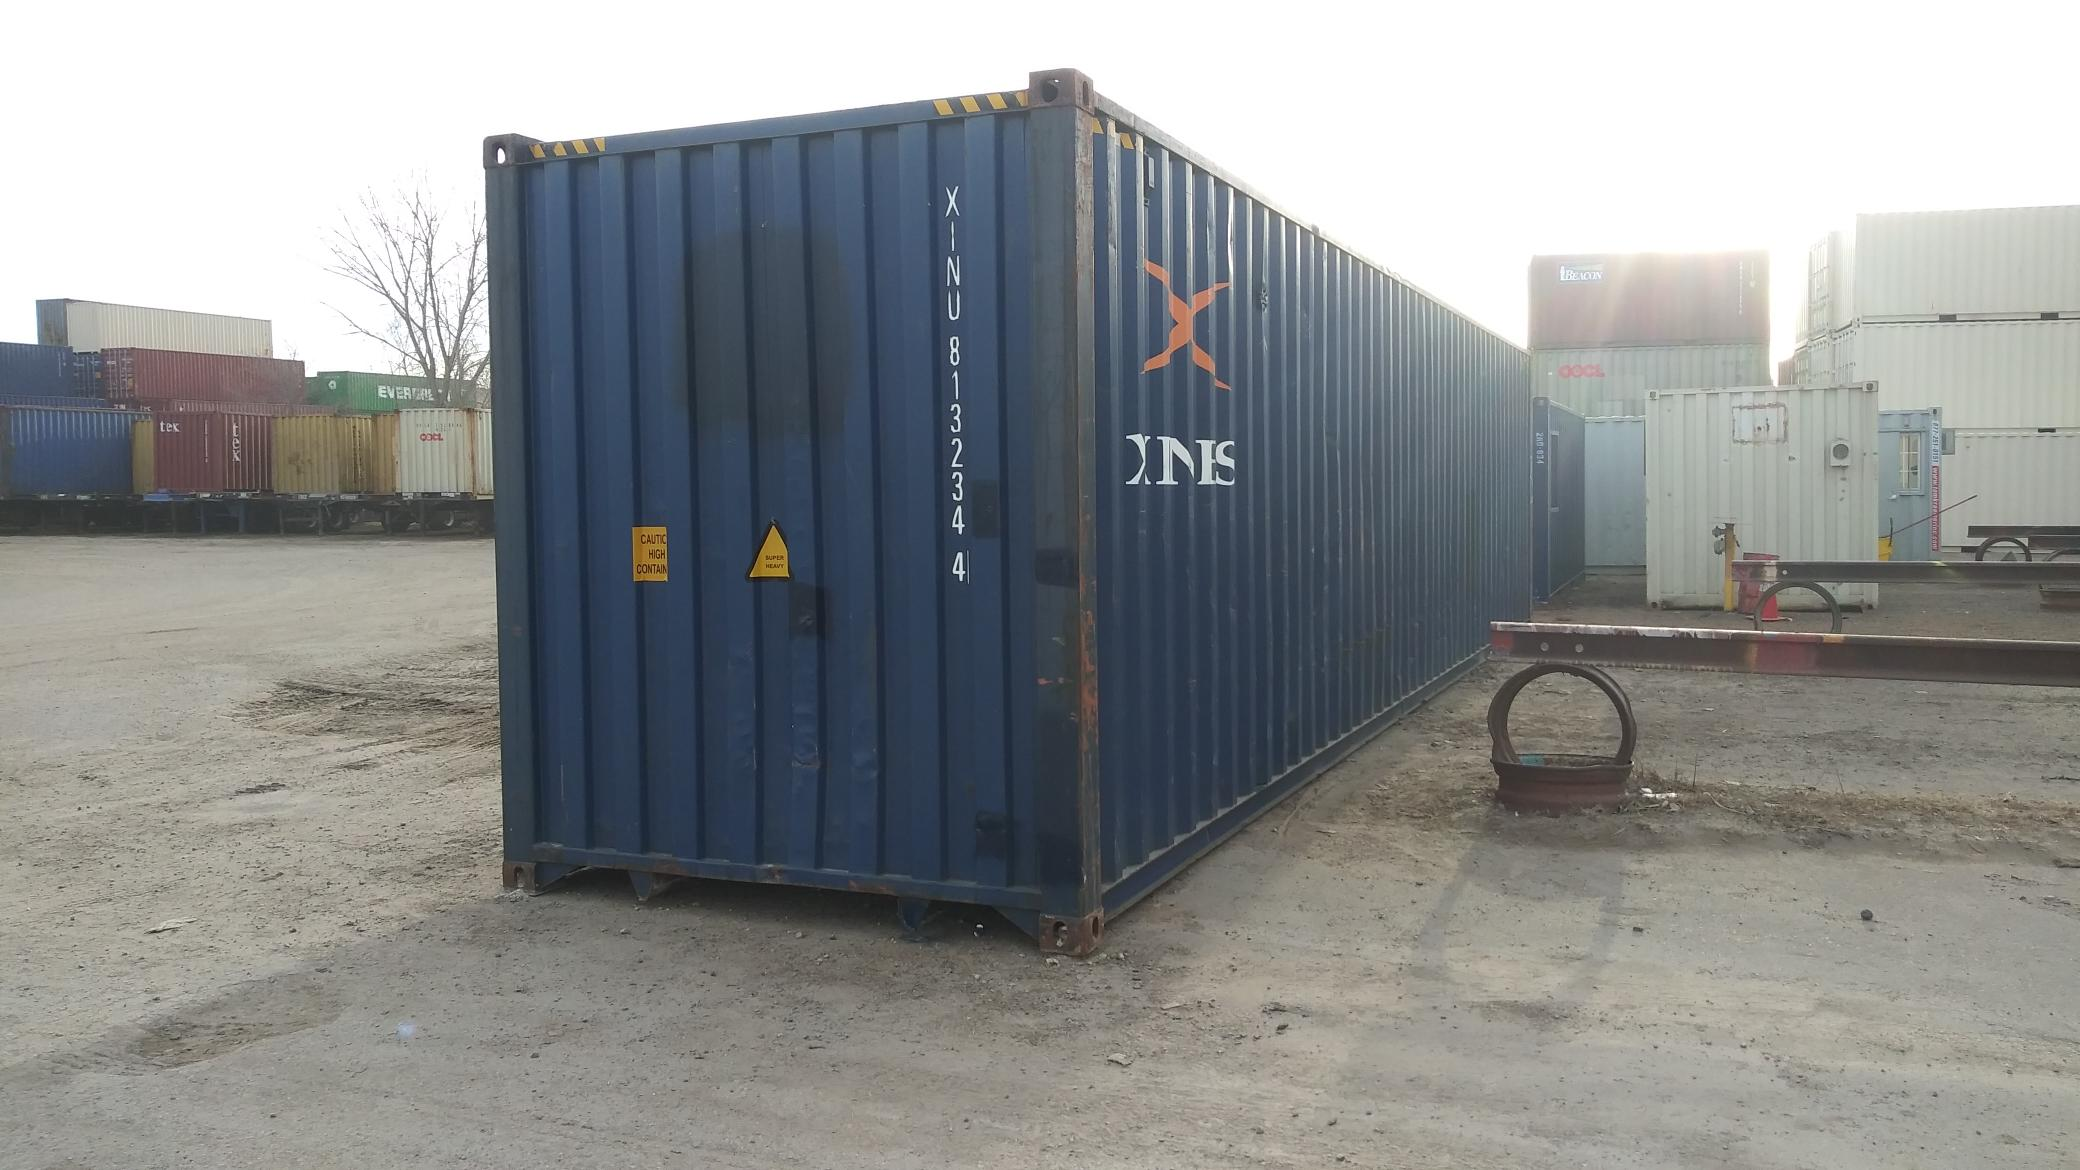 There were some holes in the end of the container that were repaired